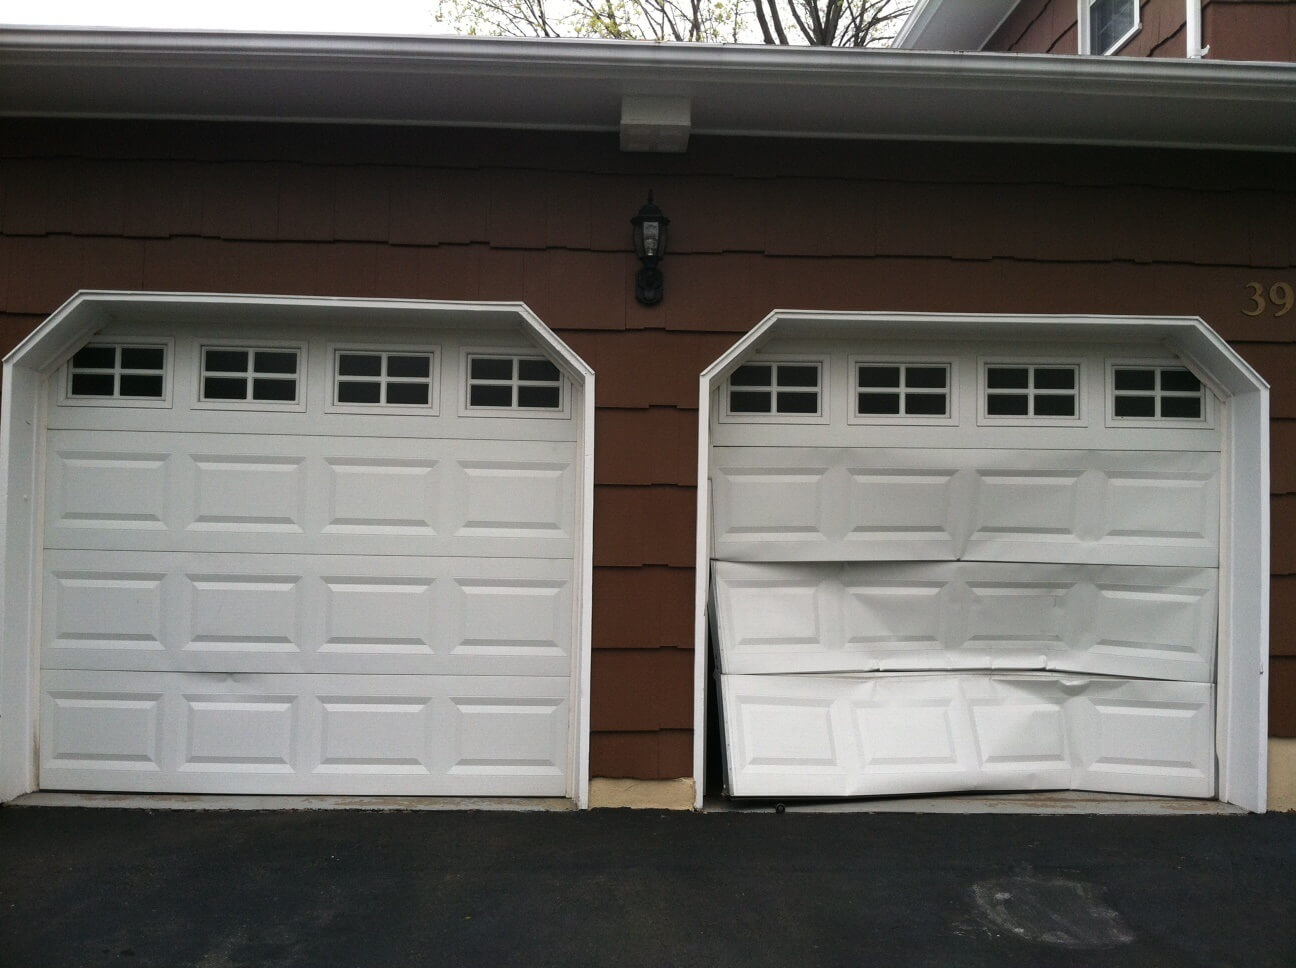 Garage Door Repair Santa Monica Broken Garage Door 310 740 9923